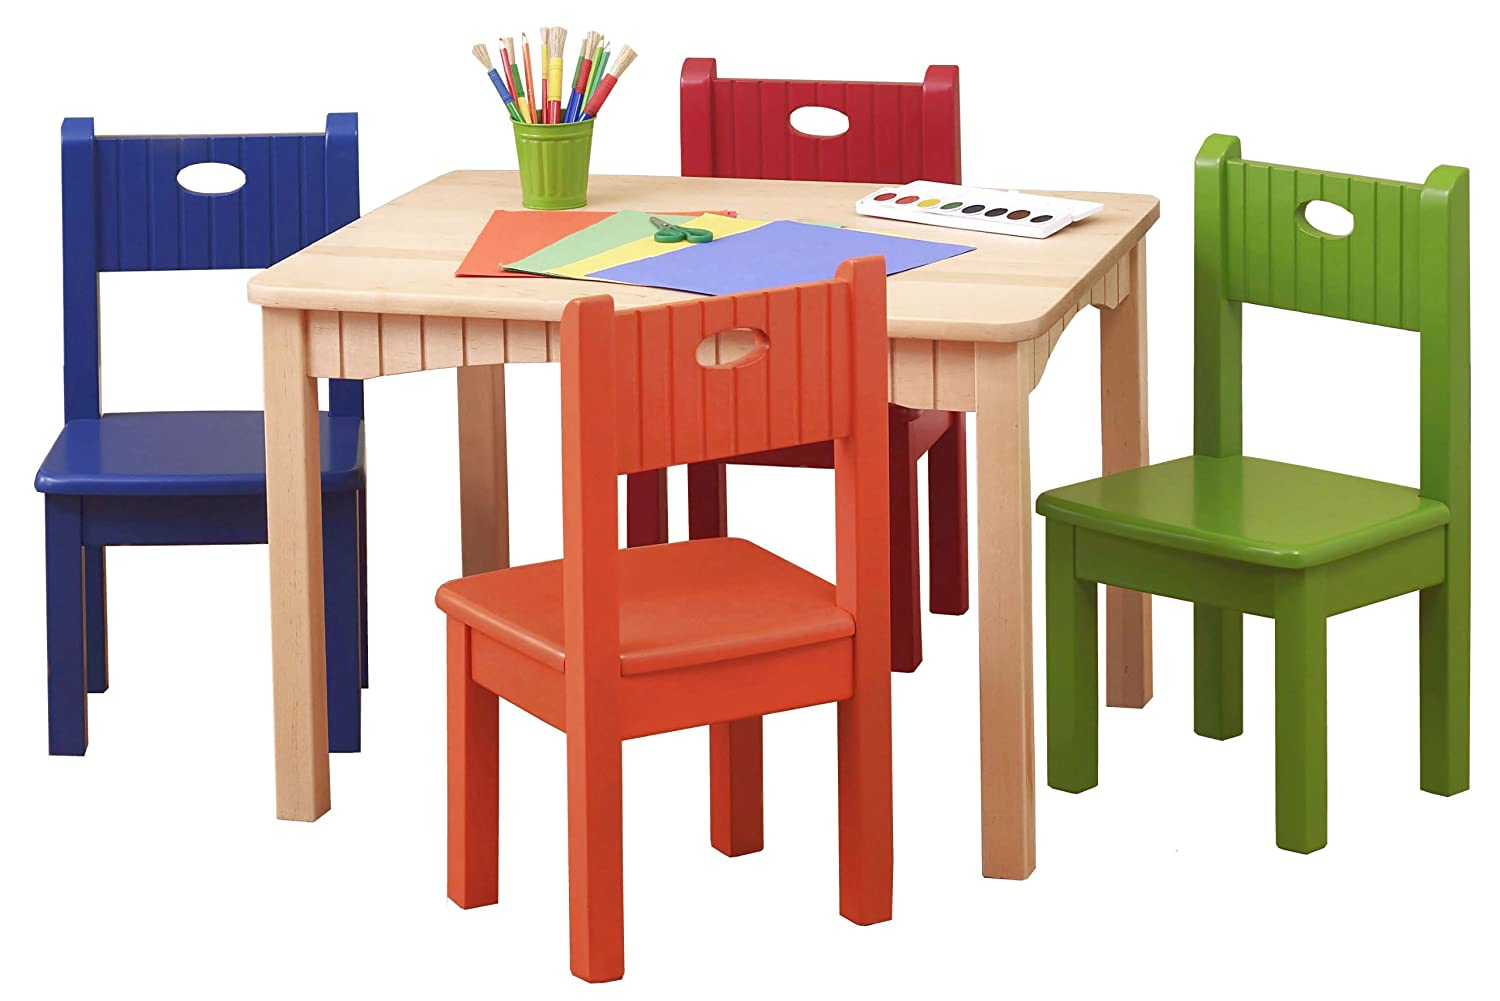 Impressive Kids Table and Chair Set 1500 x 1001 · 116 kB · jpeg